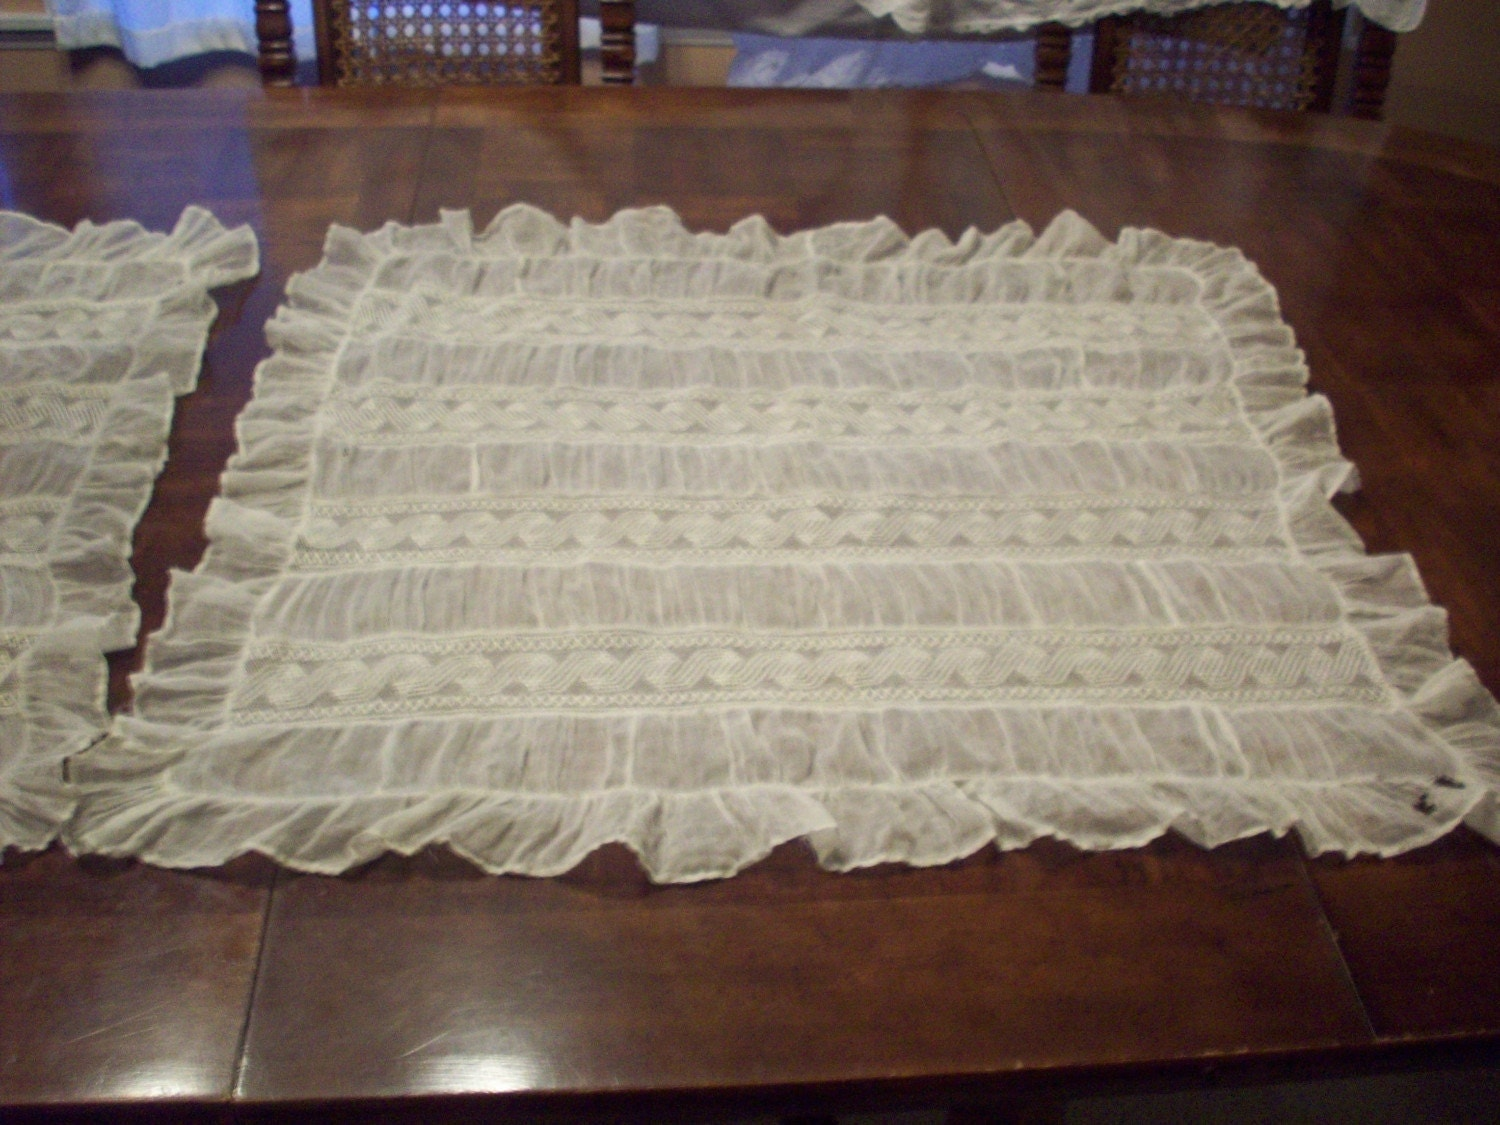 Gorgeous victorian handmade lace pillow shams by wandagert on Etsy